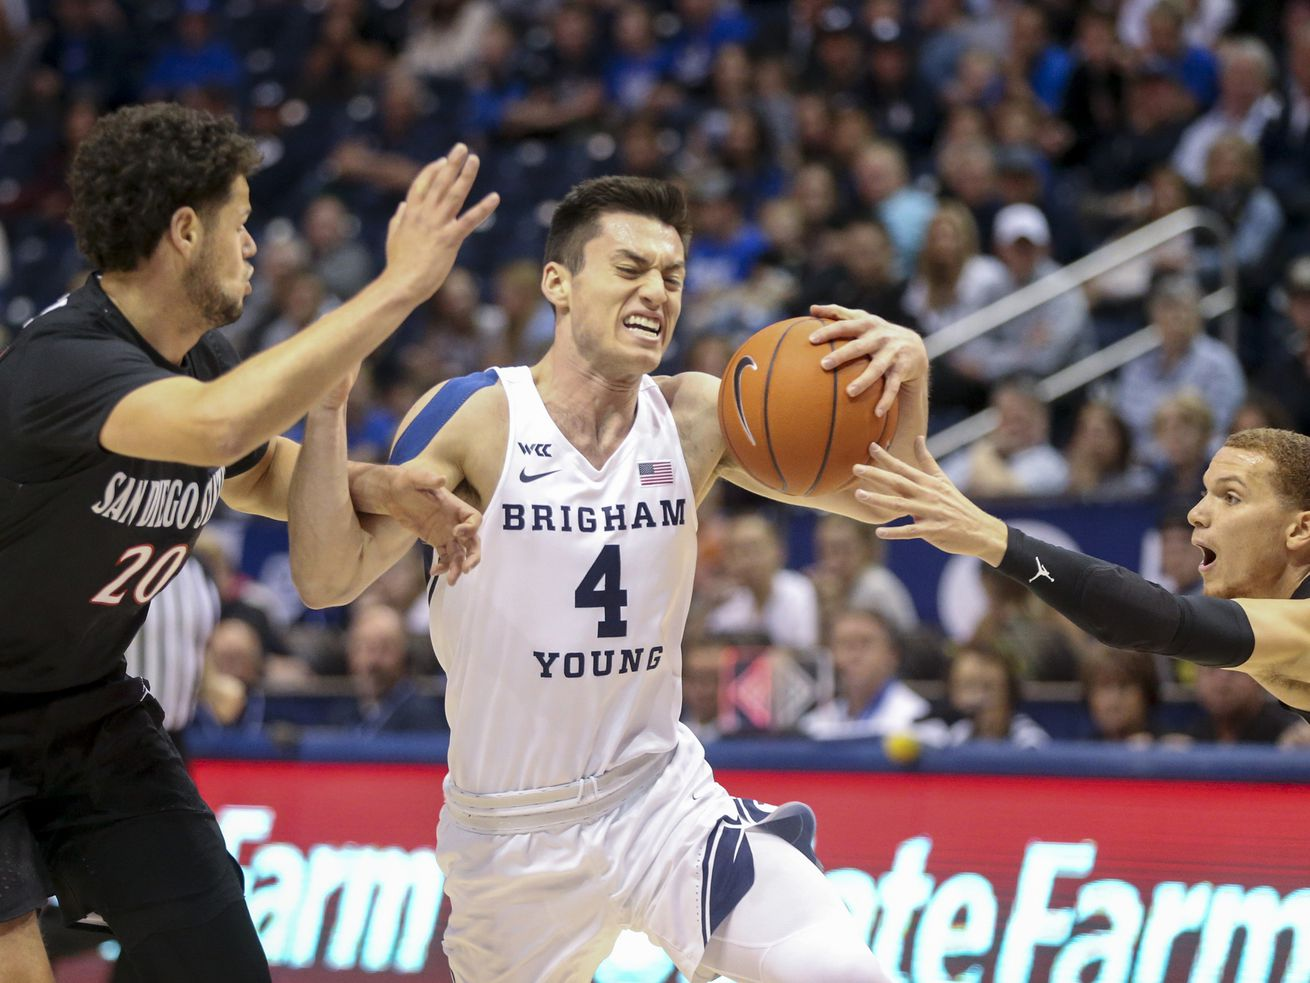 Undersized BYU looking to improve its rebounding with a 'dog mentality' as Southern Utah visits the Marriott Center